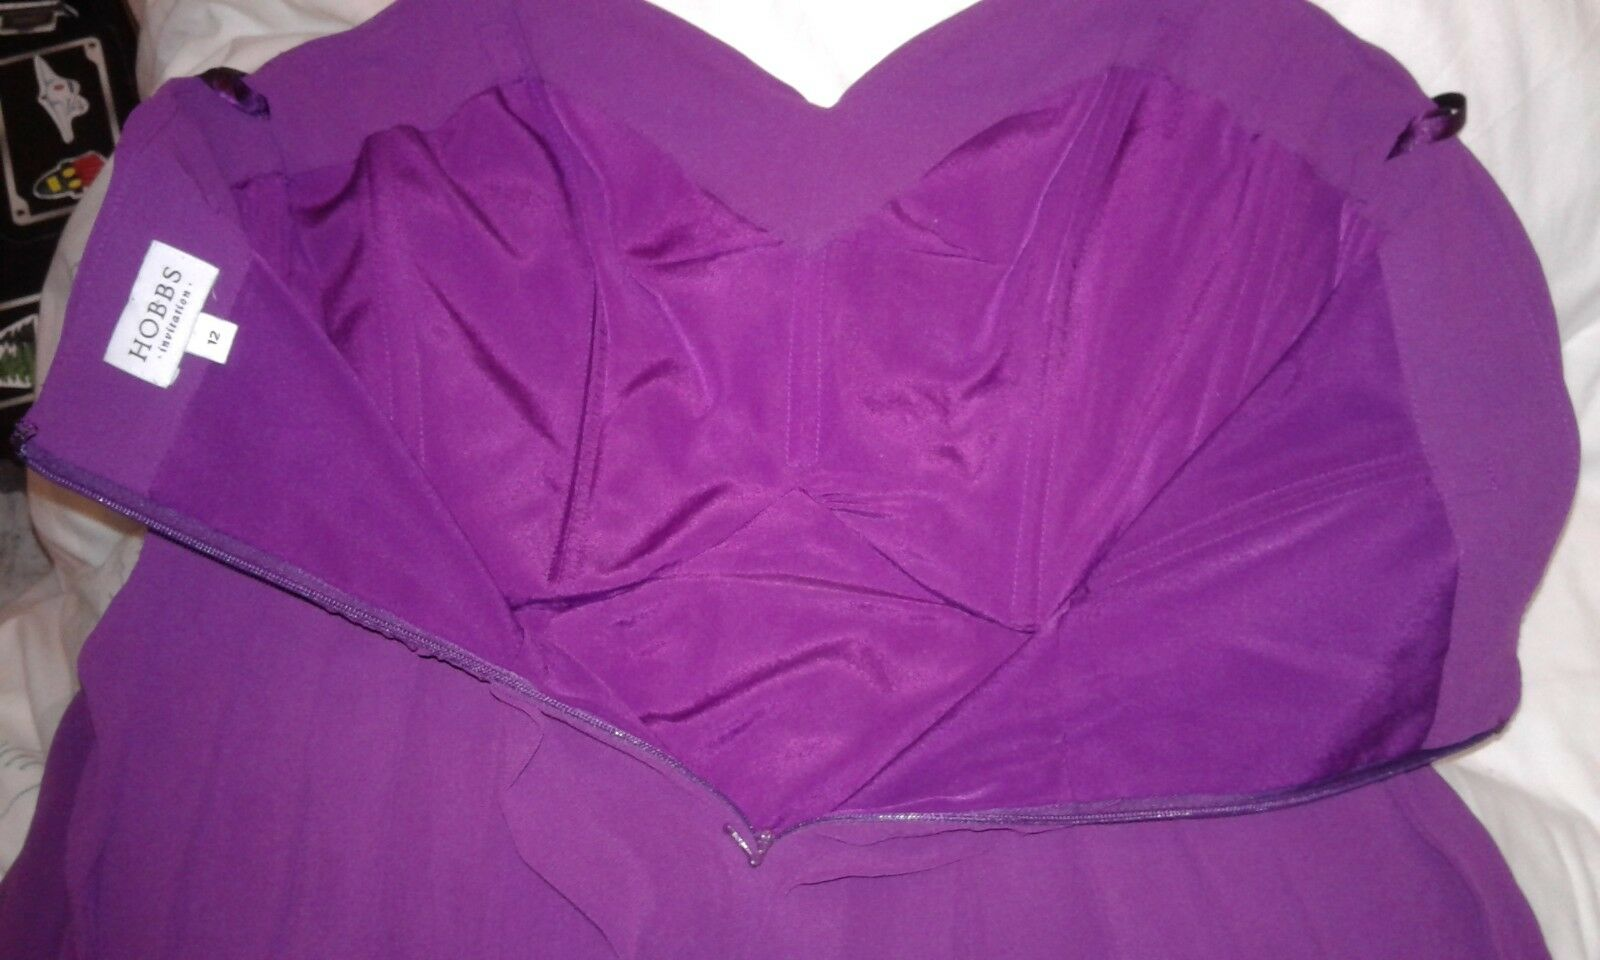 HOBBS ladies dress,lined with bra attachments,new no tag,size 12,paid      8c0b95